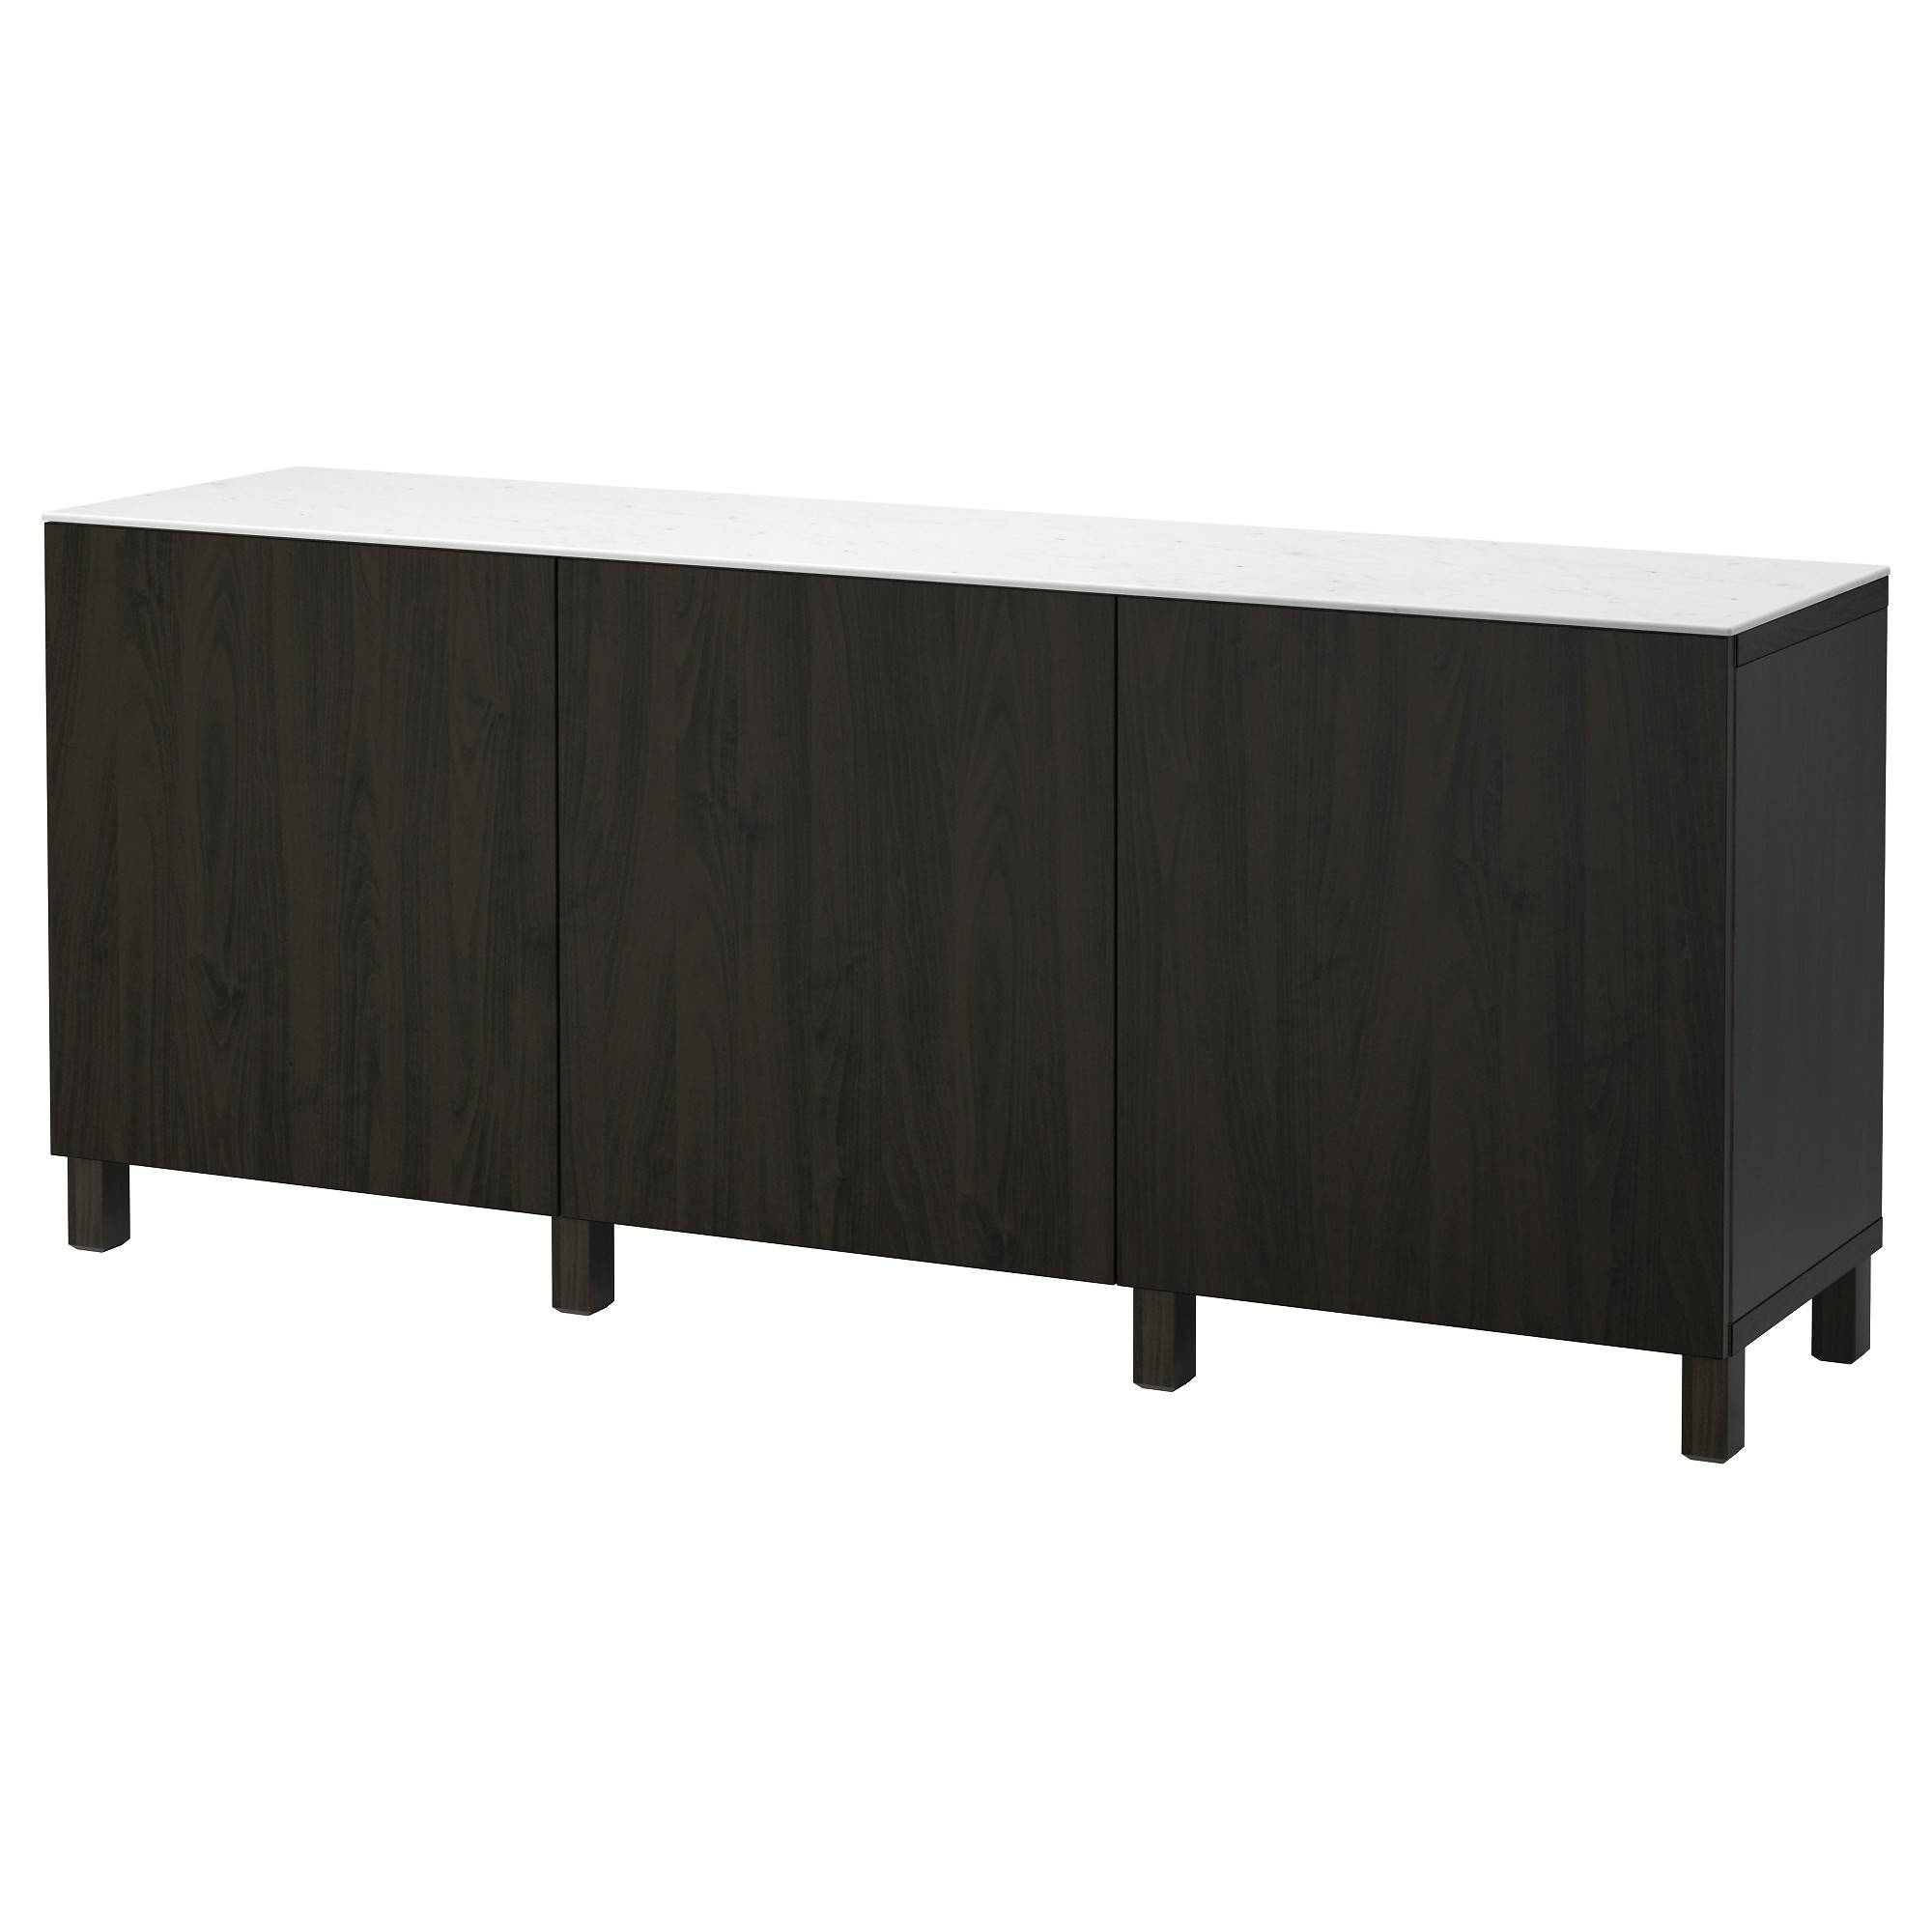 Buffet Tables & Sideboards - Ikea with regard to Black And Silver Sideboards (Image 8 of 30)